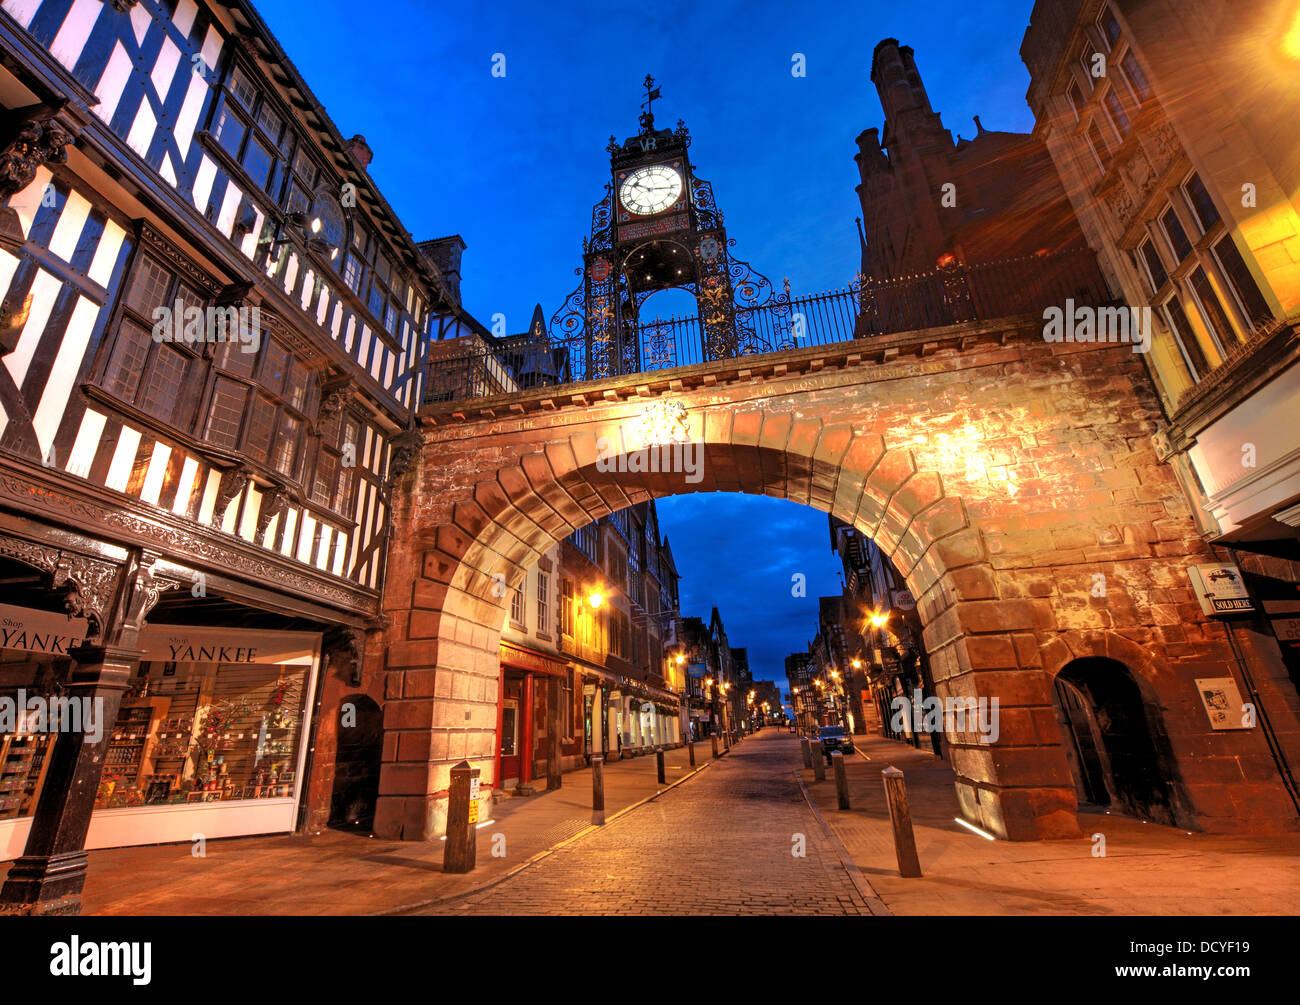 NW,North,West,classic,history,historic,Cheshire,West,and,CWAC,east,tourist,tourism,council,local,authority,gem,gems,shot,nightshot,Eastgate,Clock,which,is,said,to,be,the,most,photographed,clock,in,England,after,Big,Ben,Chester,City,Night,at,Dusk,England,UK,Deva,Roman,gate,Gotonysmith Chester is a city in Cheshire,England. Lying on the River Dee,close to the border with Wales,it is home to 120,622 inhabitants,and,is,the,largest,and,most,populous,settlement,of,the,wider,unitary,authority,area,of,Cheshire,West,and,Chester,which had a population of 328,100,according,to,the,2001,Census.,Chester,was,granted,city,status,in,1541.,Chester,was,founded,as,a,or Roman fort with the name Deva Victrix in,Eastgate,Northgate,Watergate and Bridge,follow routes laid out at this time – almost 2,000,years,ago.,One,of,the,three,main,Roman,army,bases,Deva,later,became,a,major,settlement,in,the,Roman,province,of,Britannia.,After,the,Romans,left,in,the,5th,century,the Saxons fortified the town,castrum,Buy Pictures of,Buy Images Of